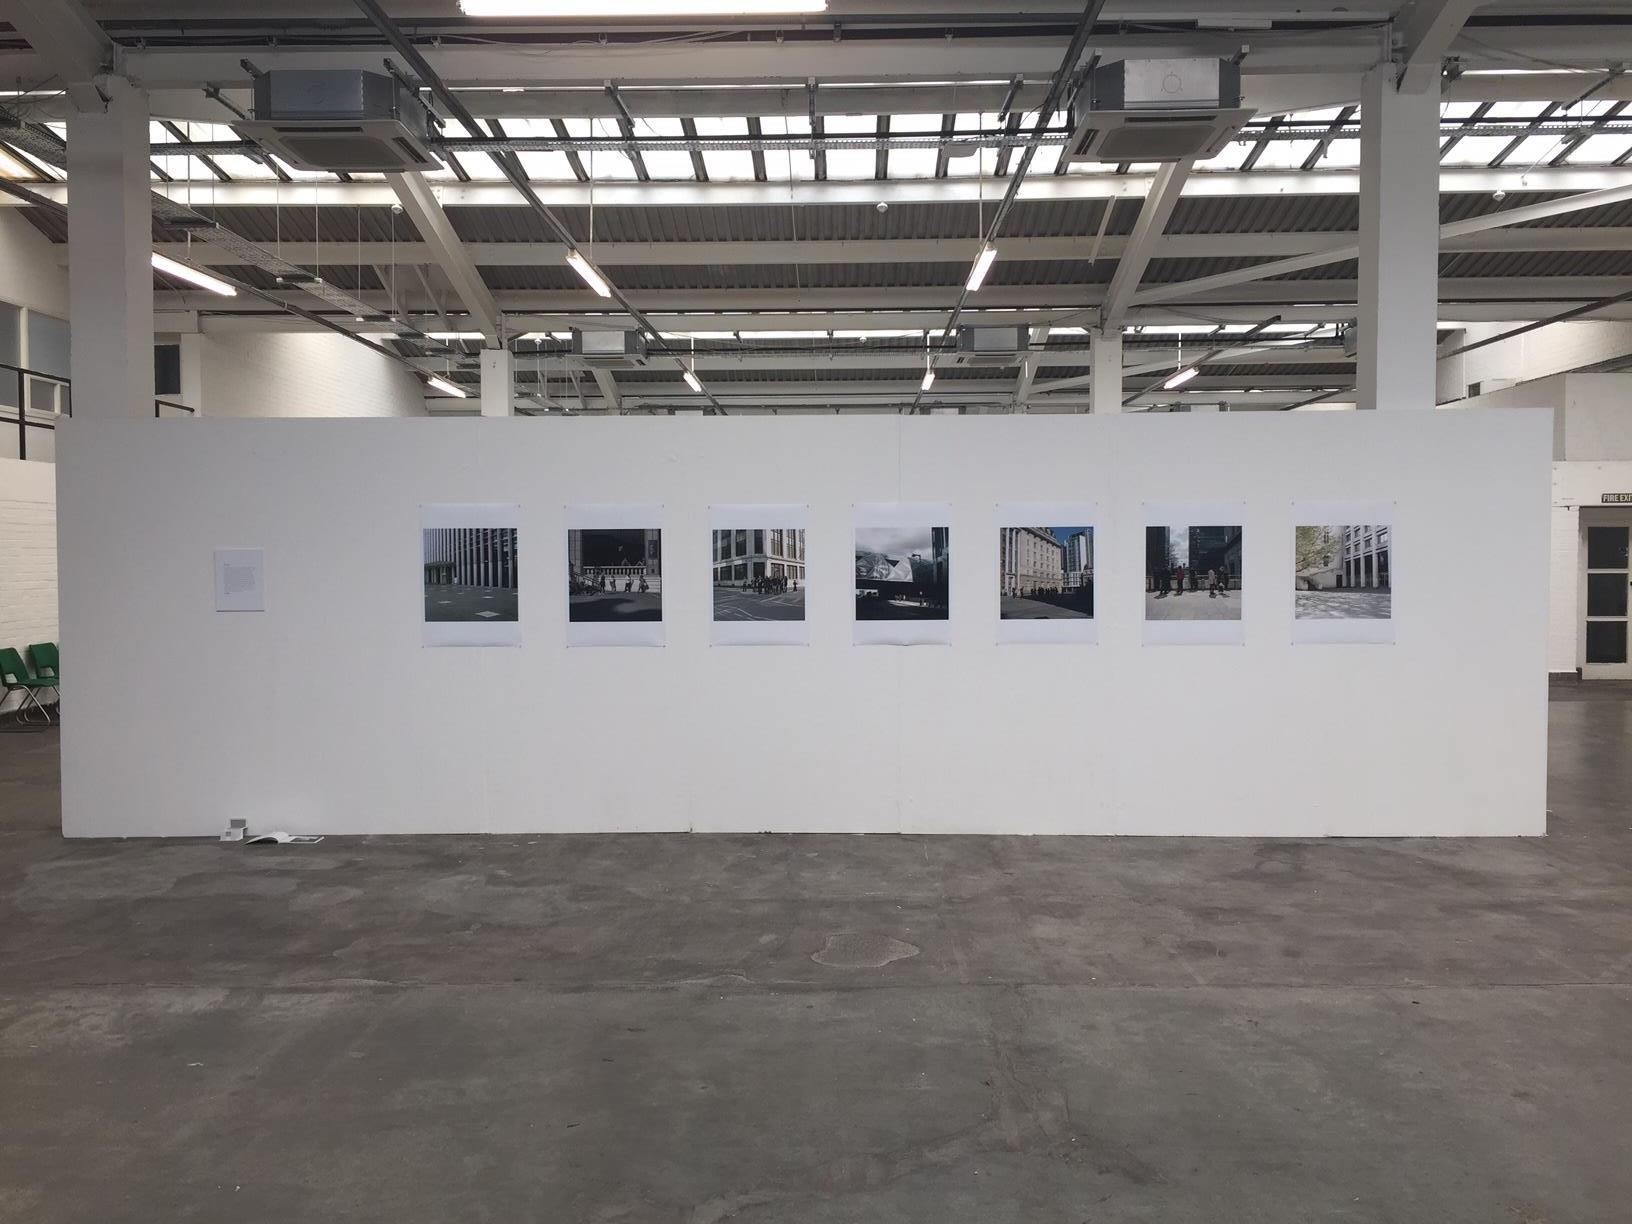 The Stage - All the original prints exhibited at Free Range at The Old Truman Brewery are available for sale. Limited Edition digital C-Type A1 prints (1/6) are also available.